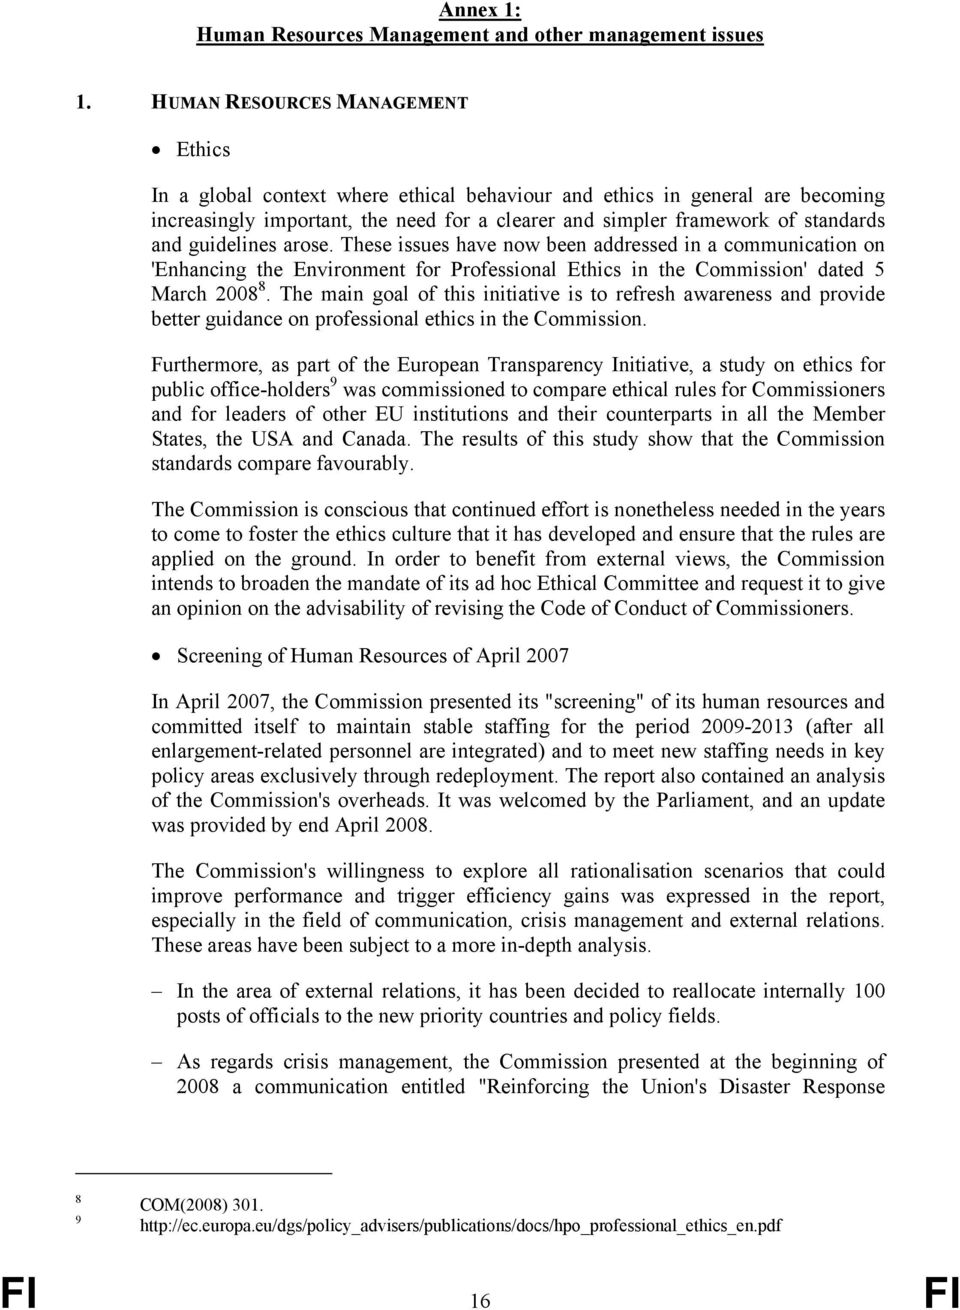 guidelines arose. These issues have now been addressed in a communication on 'Enhancing the Environment for Professional Ethics in the Commission' dated 5 March 2008 8.